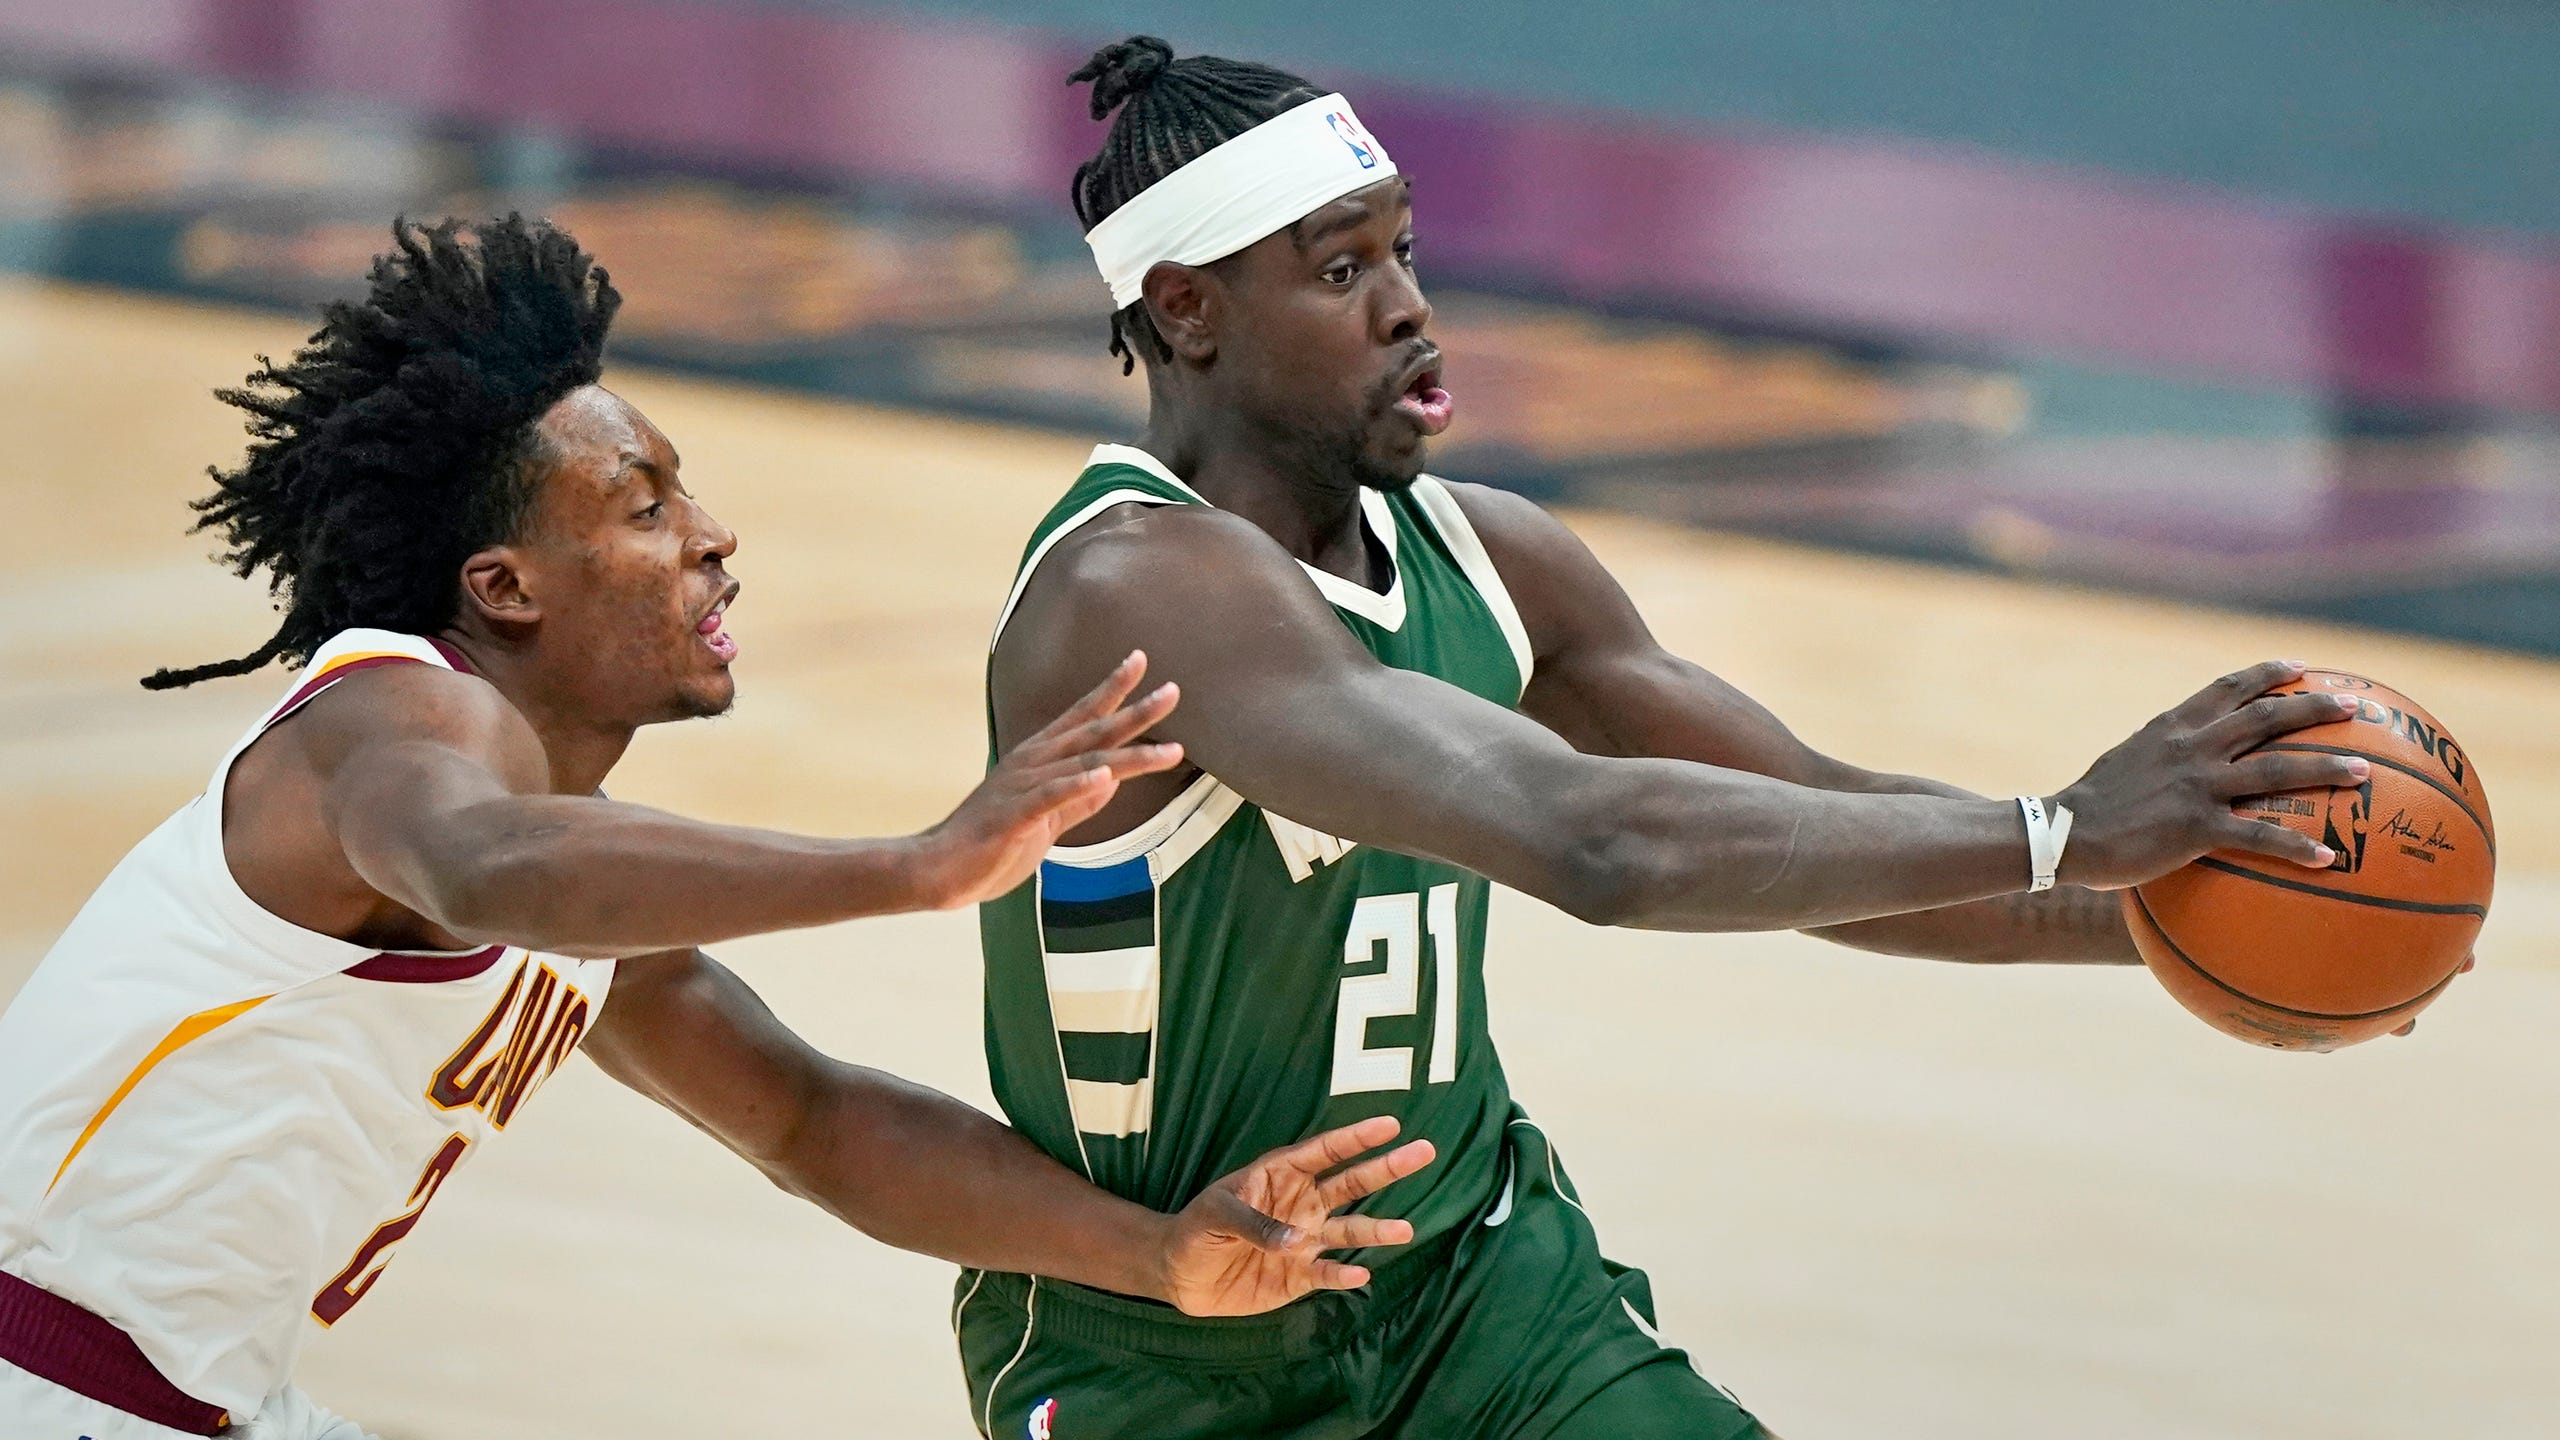 Milwaukee Bucks' Jrue Holiday (21) drives against Cleveland Cavaliers' Collin Sexton (2) in the first half of an NBA basketball game, Saturday, Feb. 6, 2021, in Cleveland. (AP Photo/Tony Dejak) ORG XMIT: OHTD106